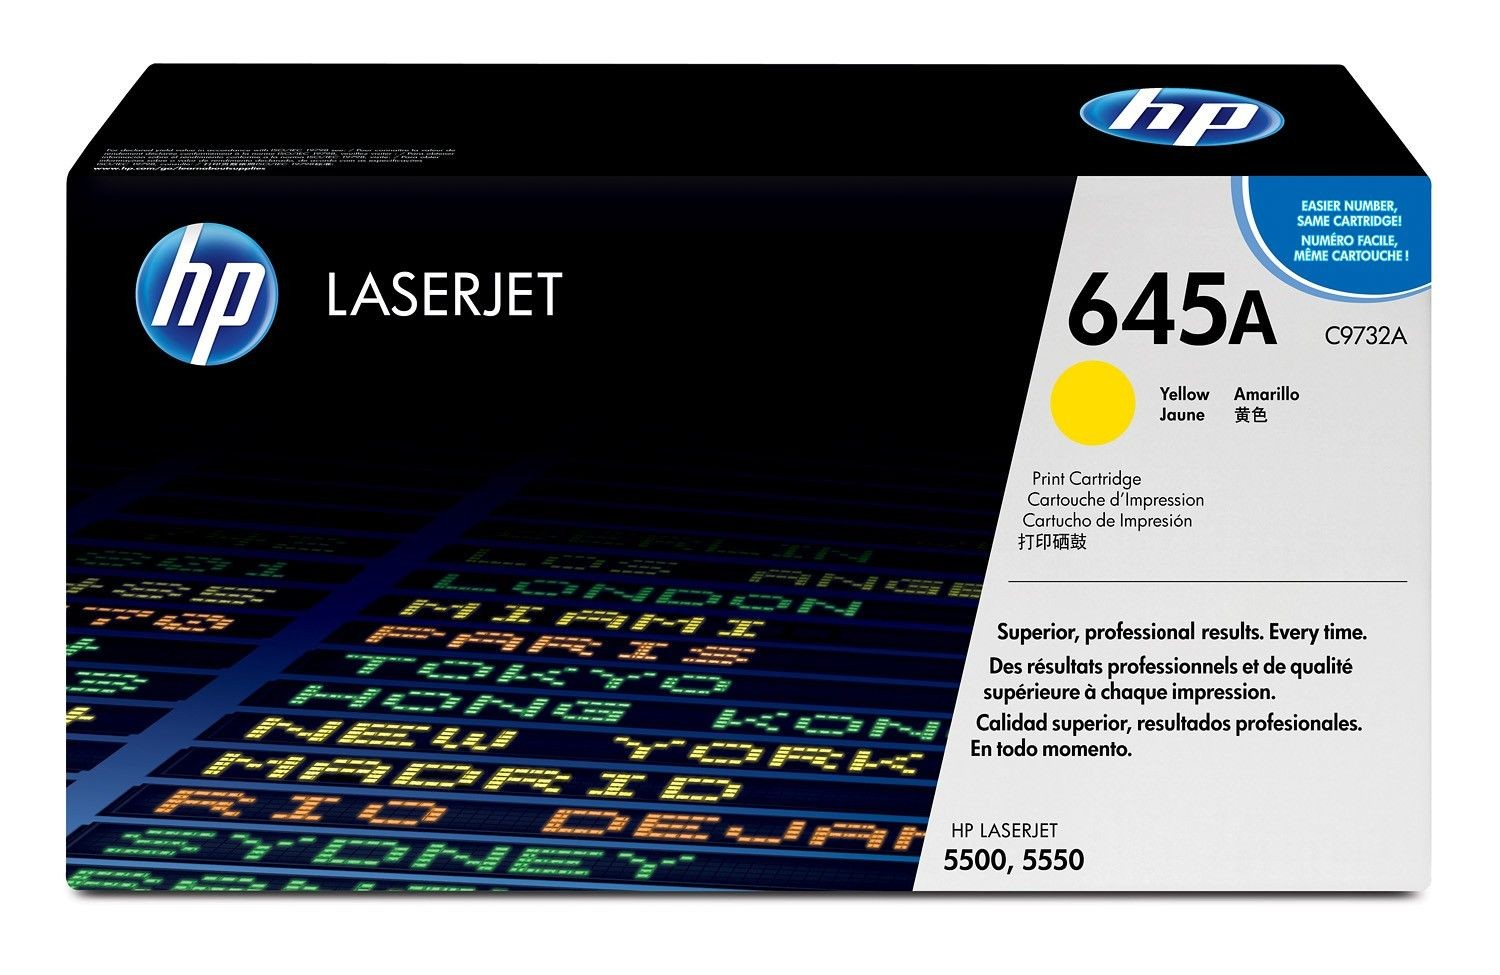 HP Toner HP yellow | 12000str | ColorLaserJet5500